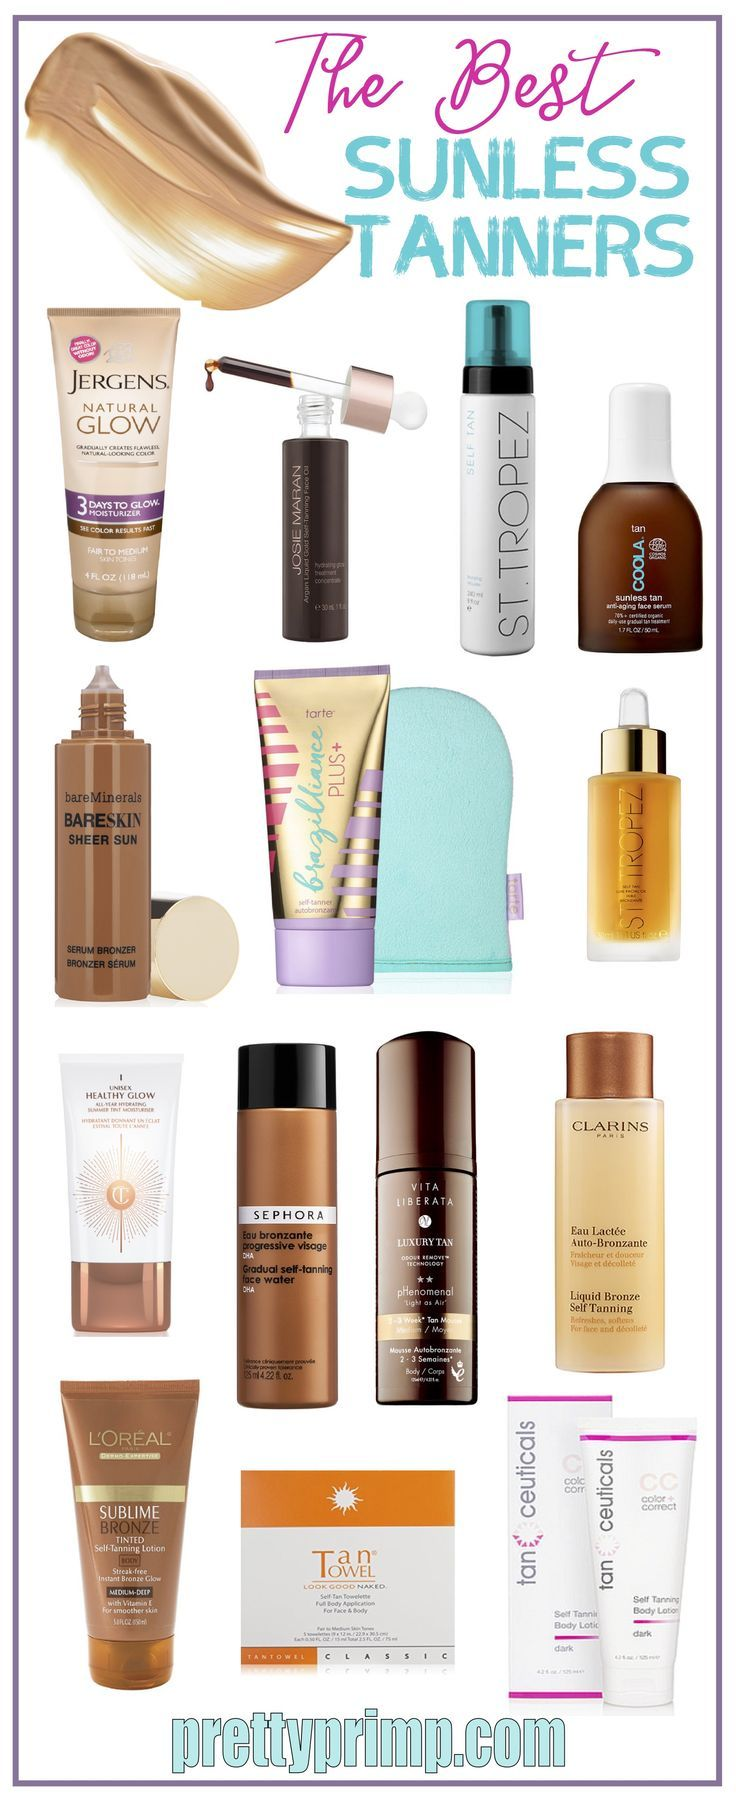 The best and most natural looking sunless tanners for face and body that will help you achieve a gorgeous tan year round! These self tanners range from drugstore brands to high end, so there's something for everyone's budget.